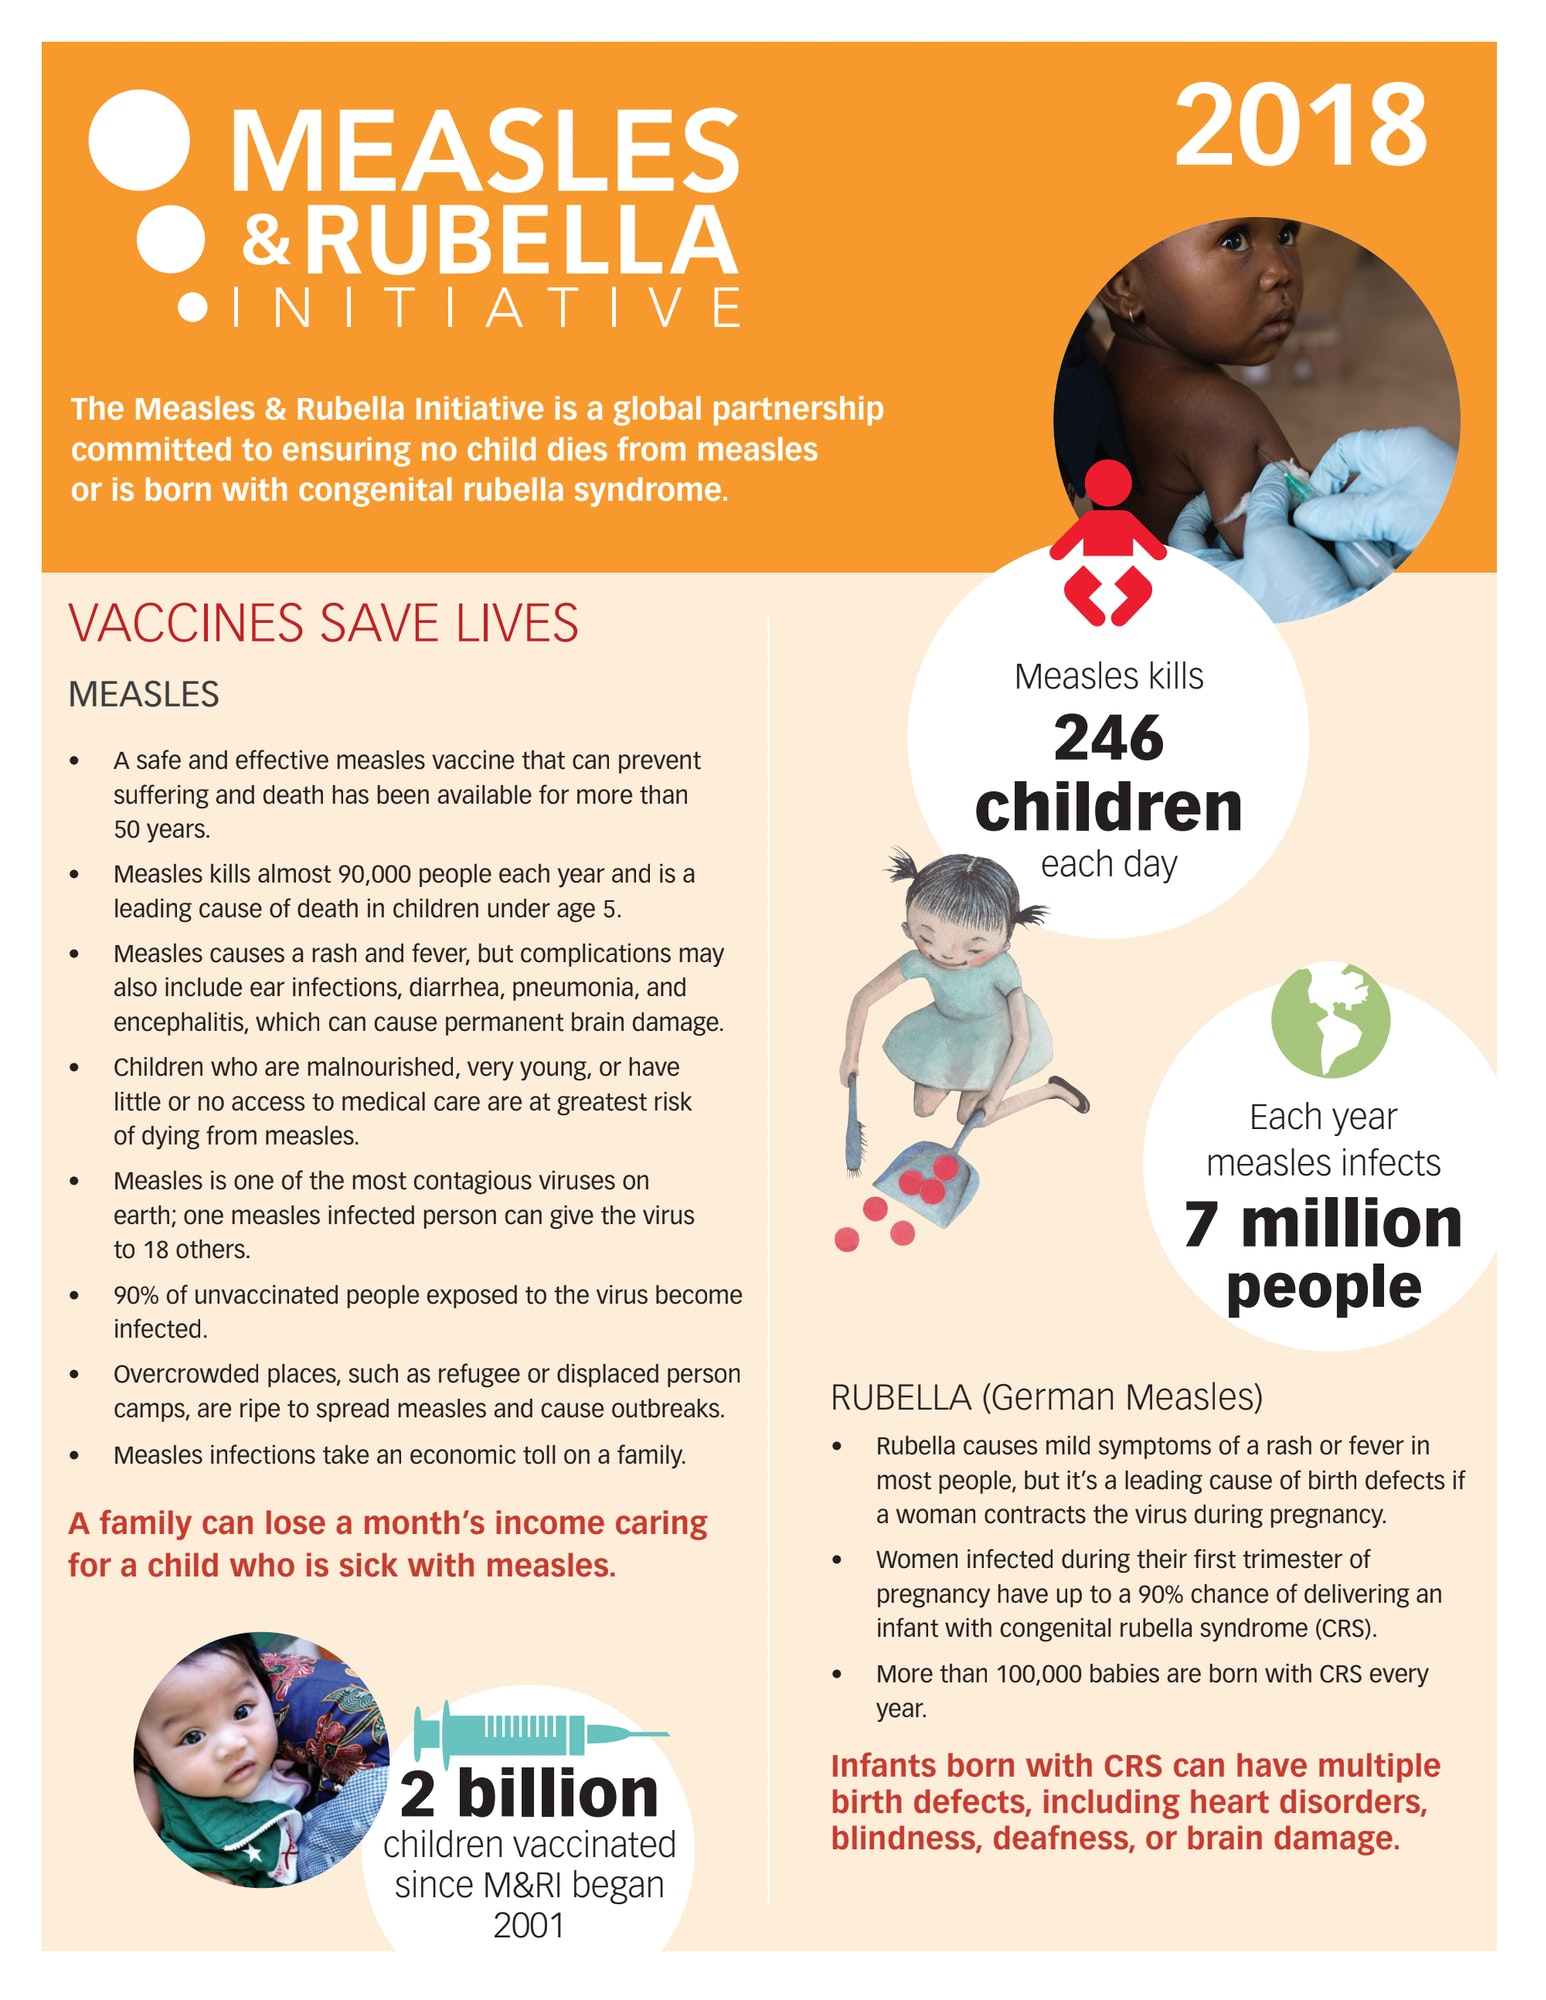 Poster about Measles and Rubella Initiative 2018